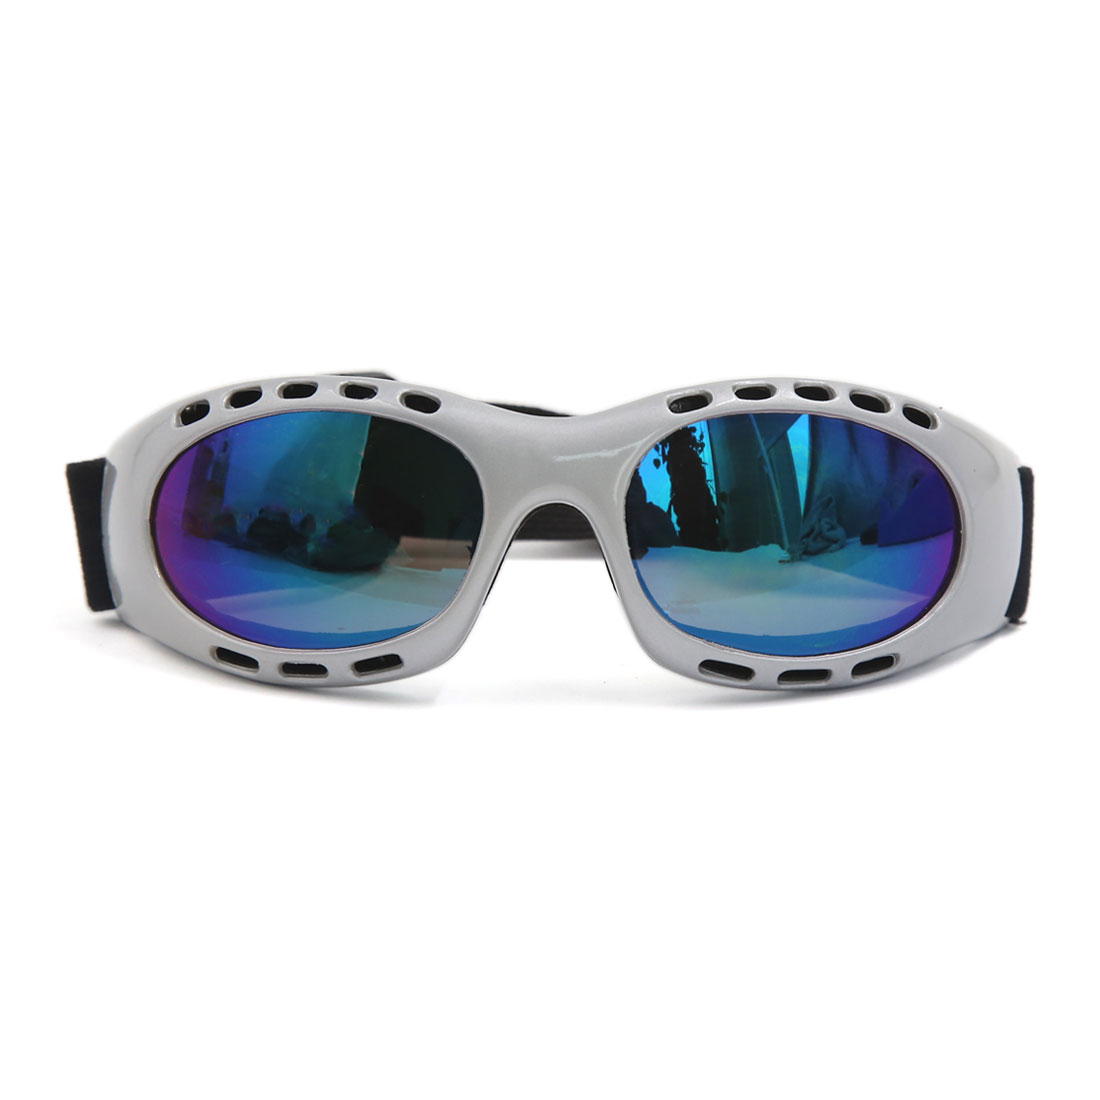 Nylon Elastic Strap Colorful Lens UV Protective Outdoor Goggles for Motorcycle